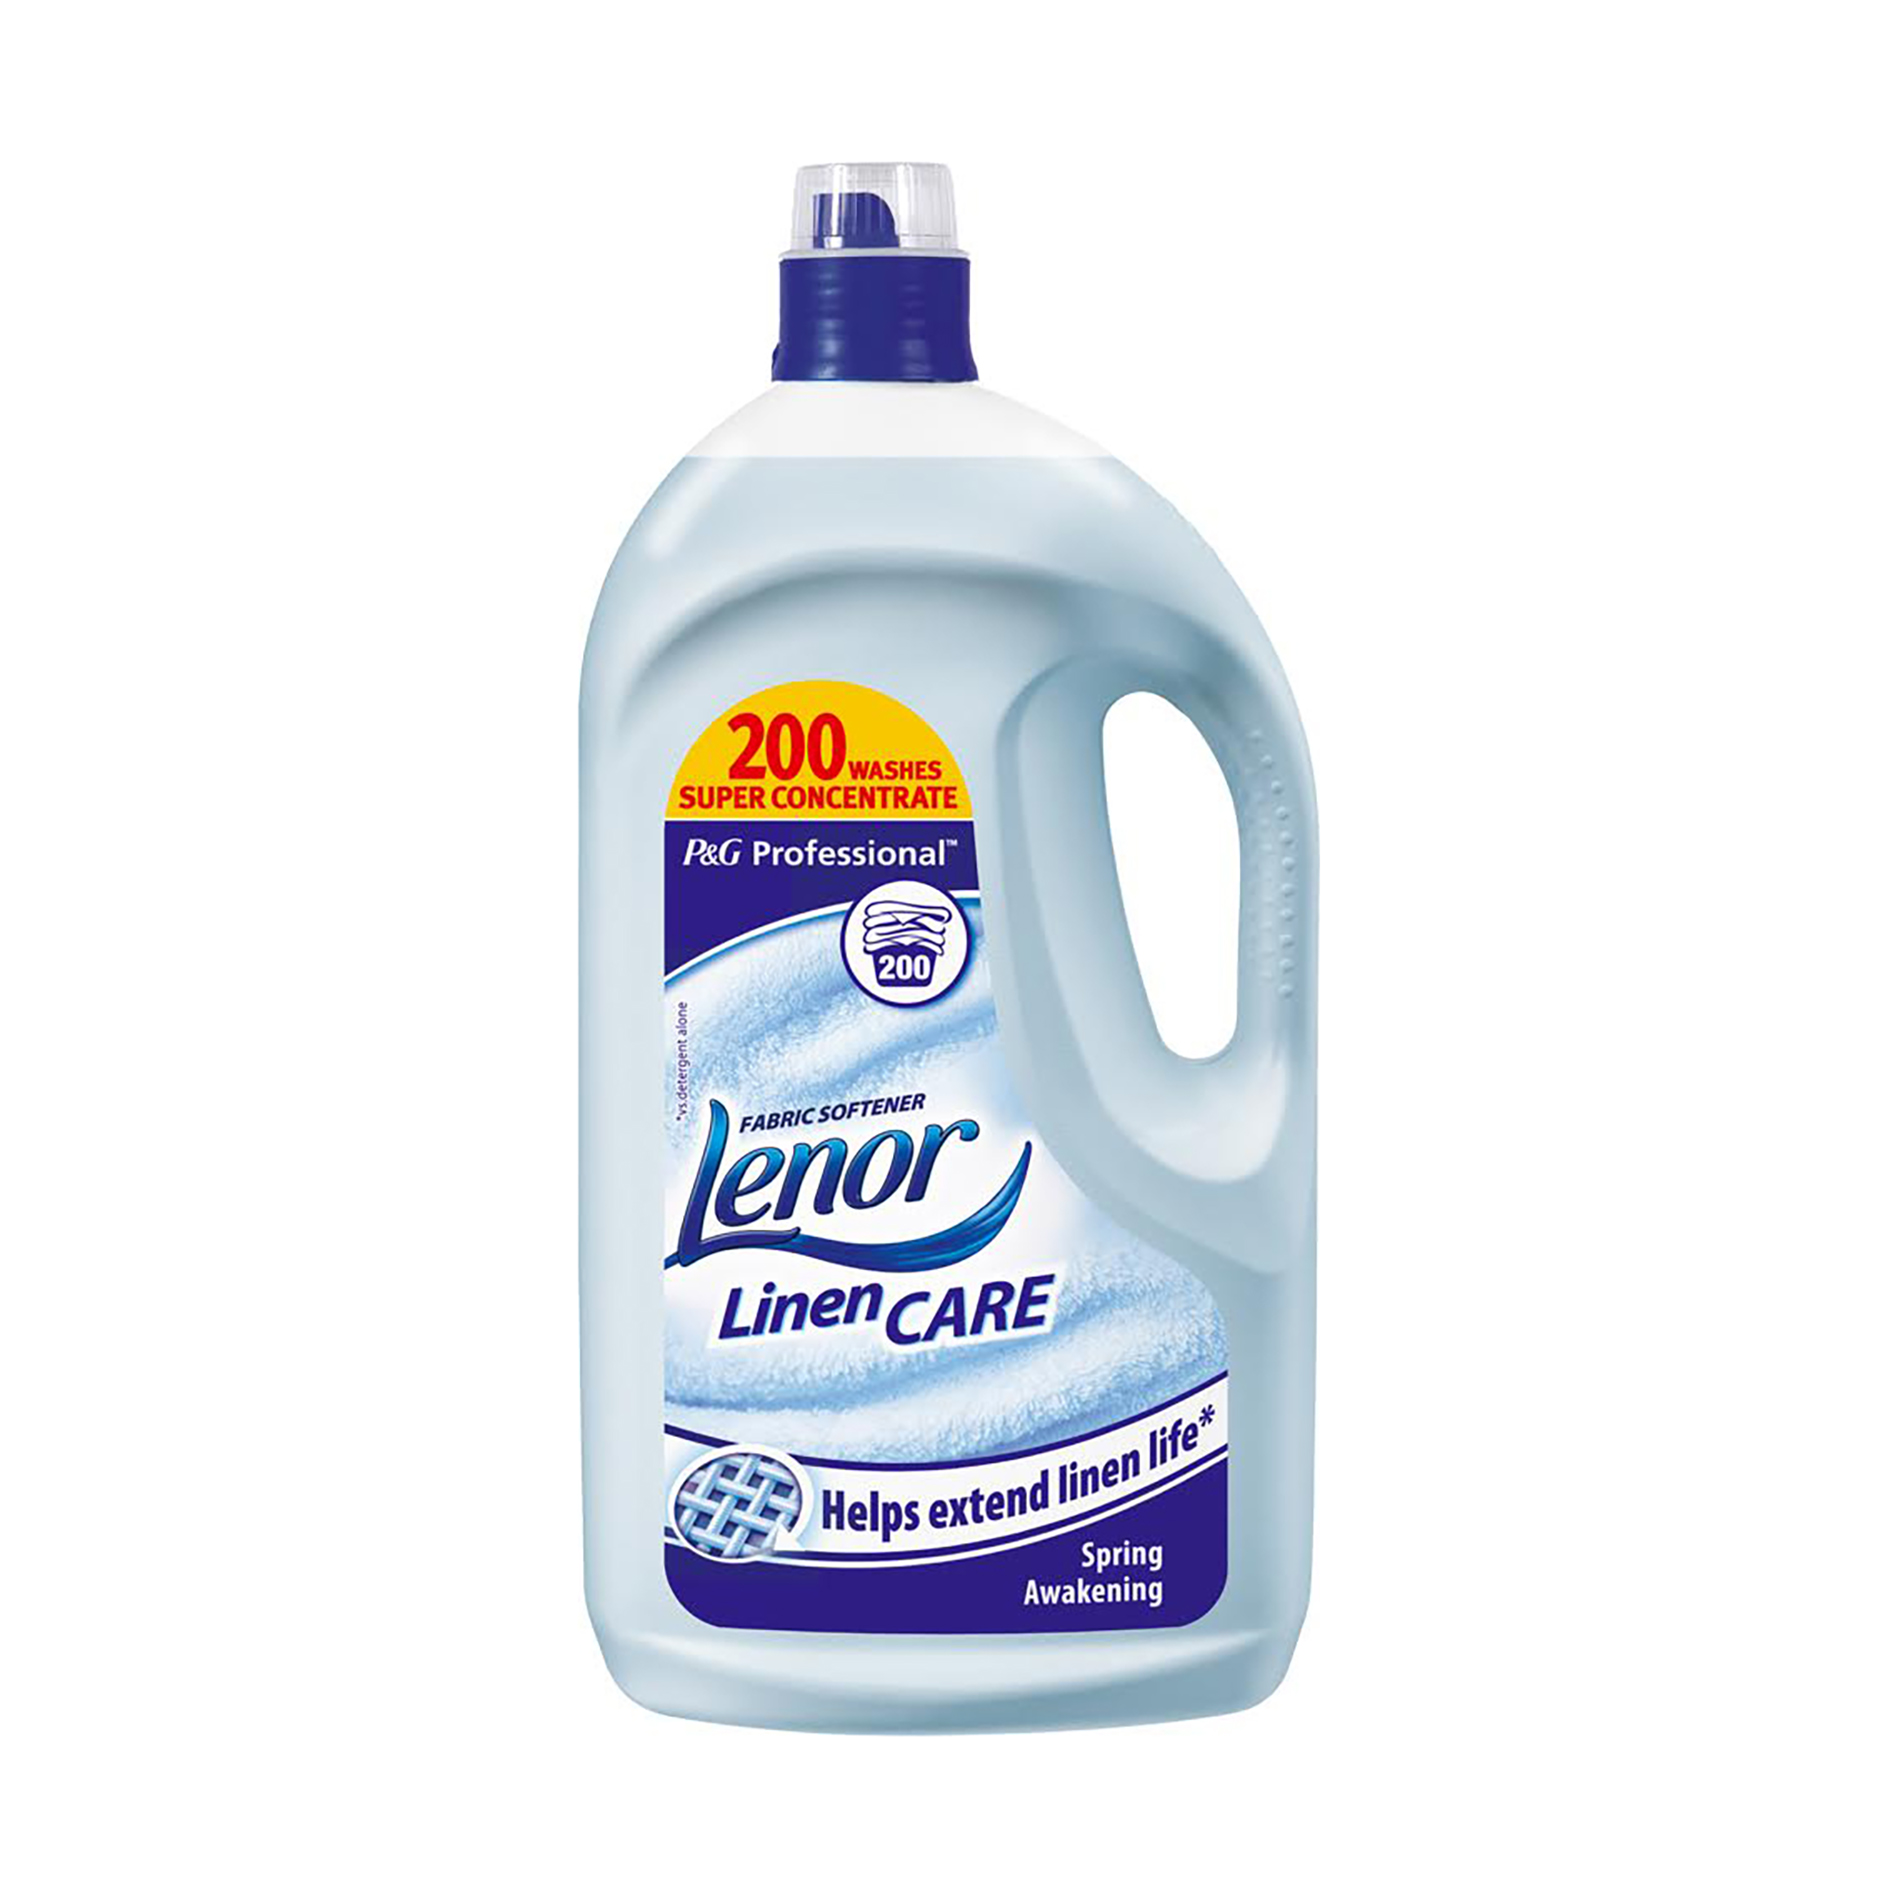 Laundry Basket Lenor Professional Fabric Softener Spring Awakening 200 Washes 4 Litre Ref 87406